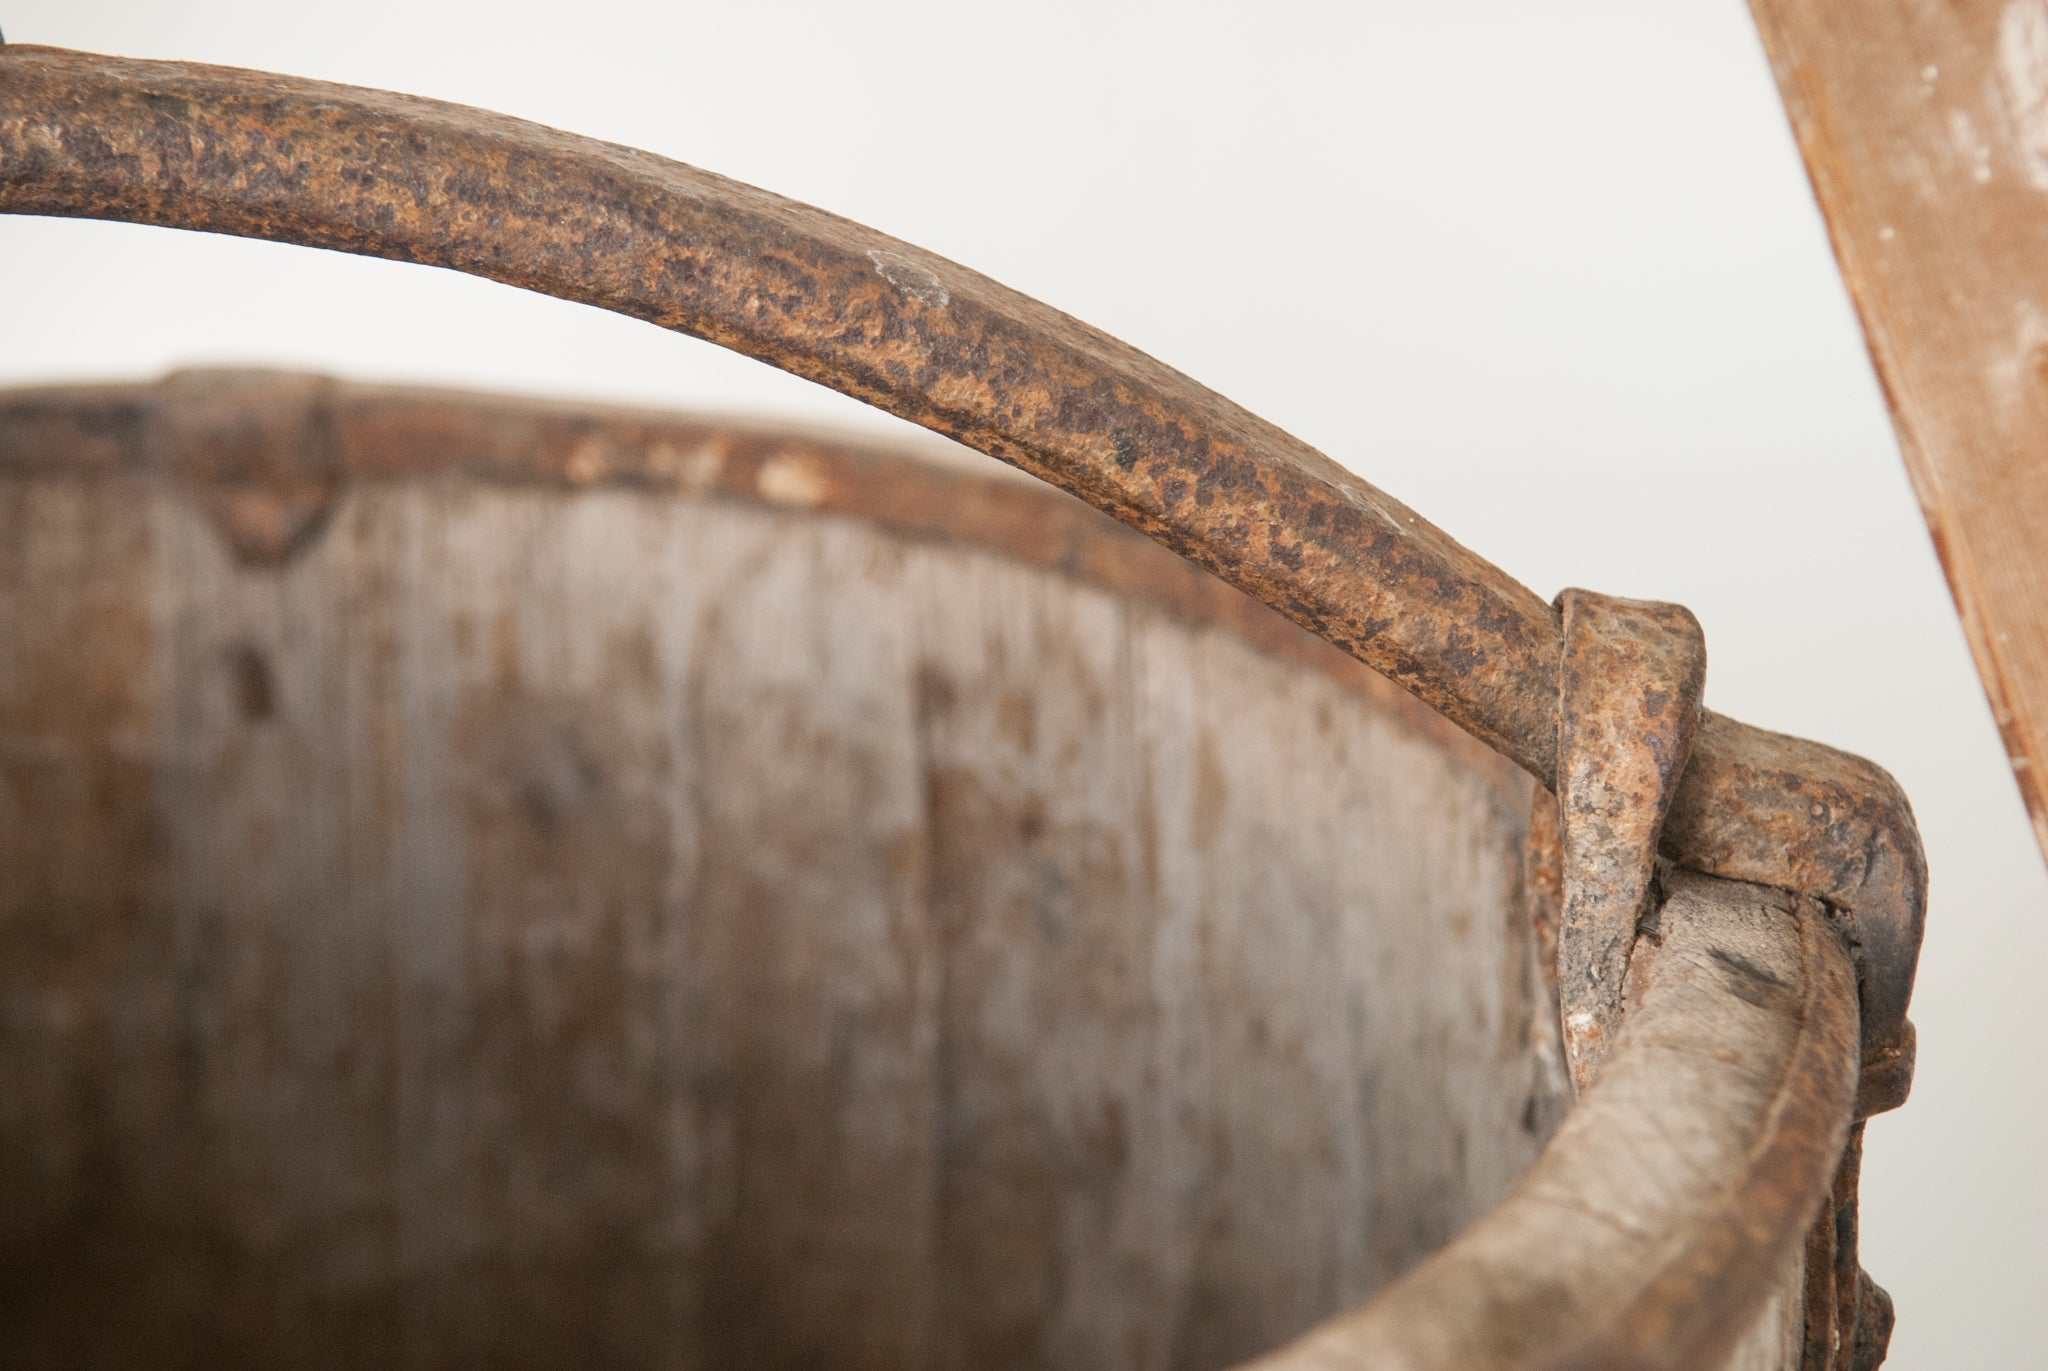 Vintage Well Bucket_Detail 2